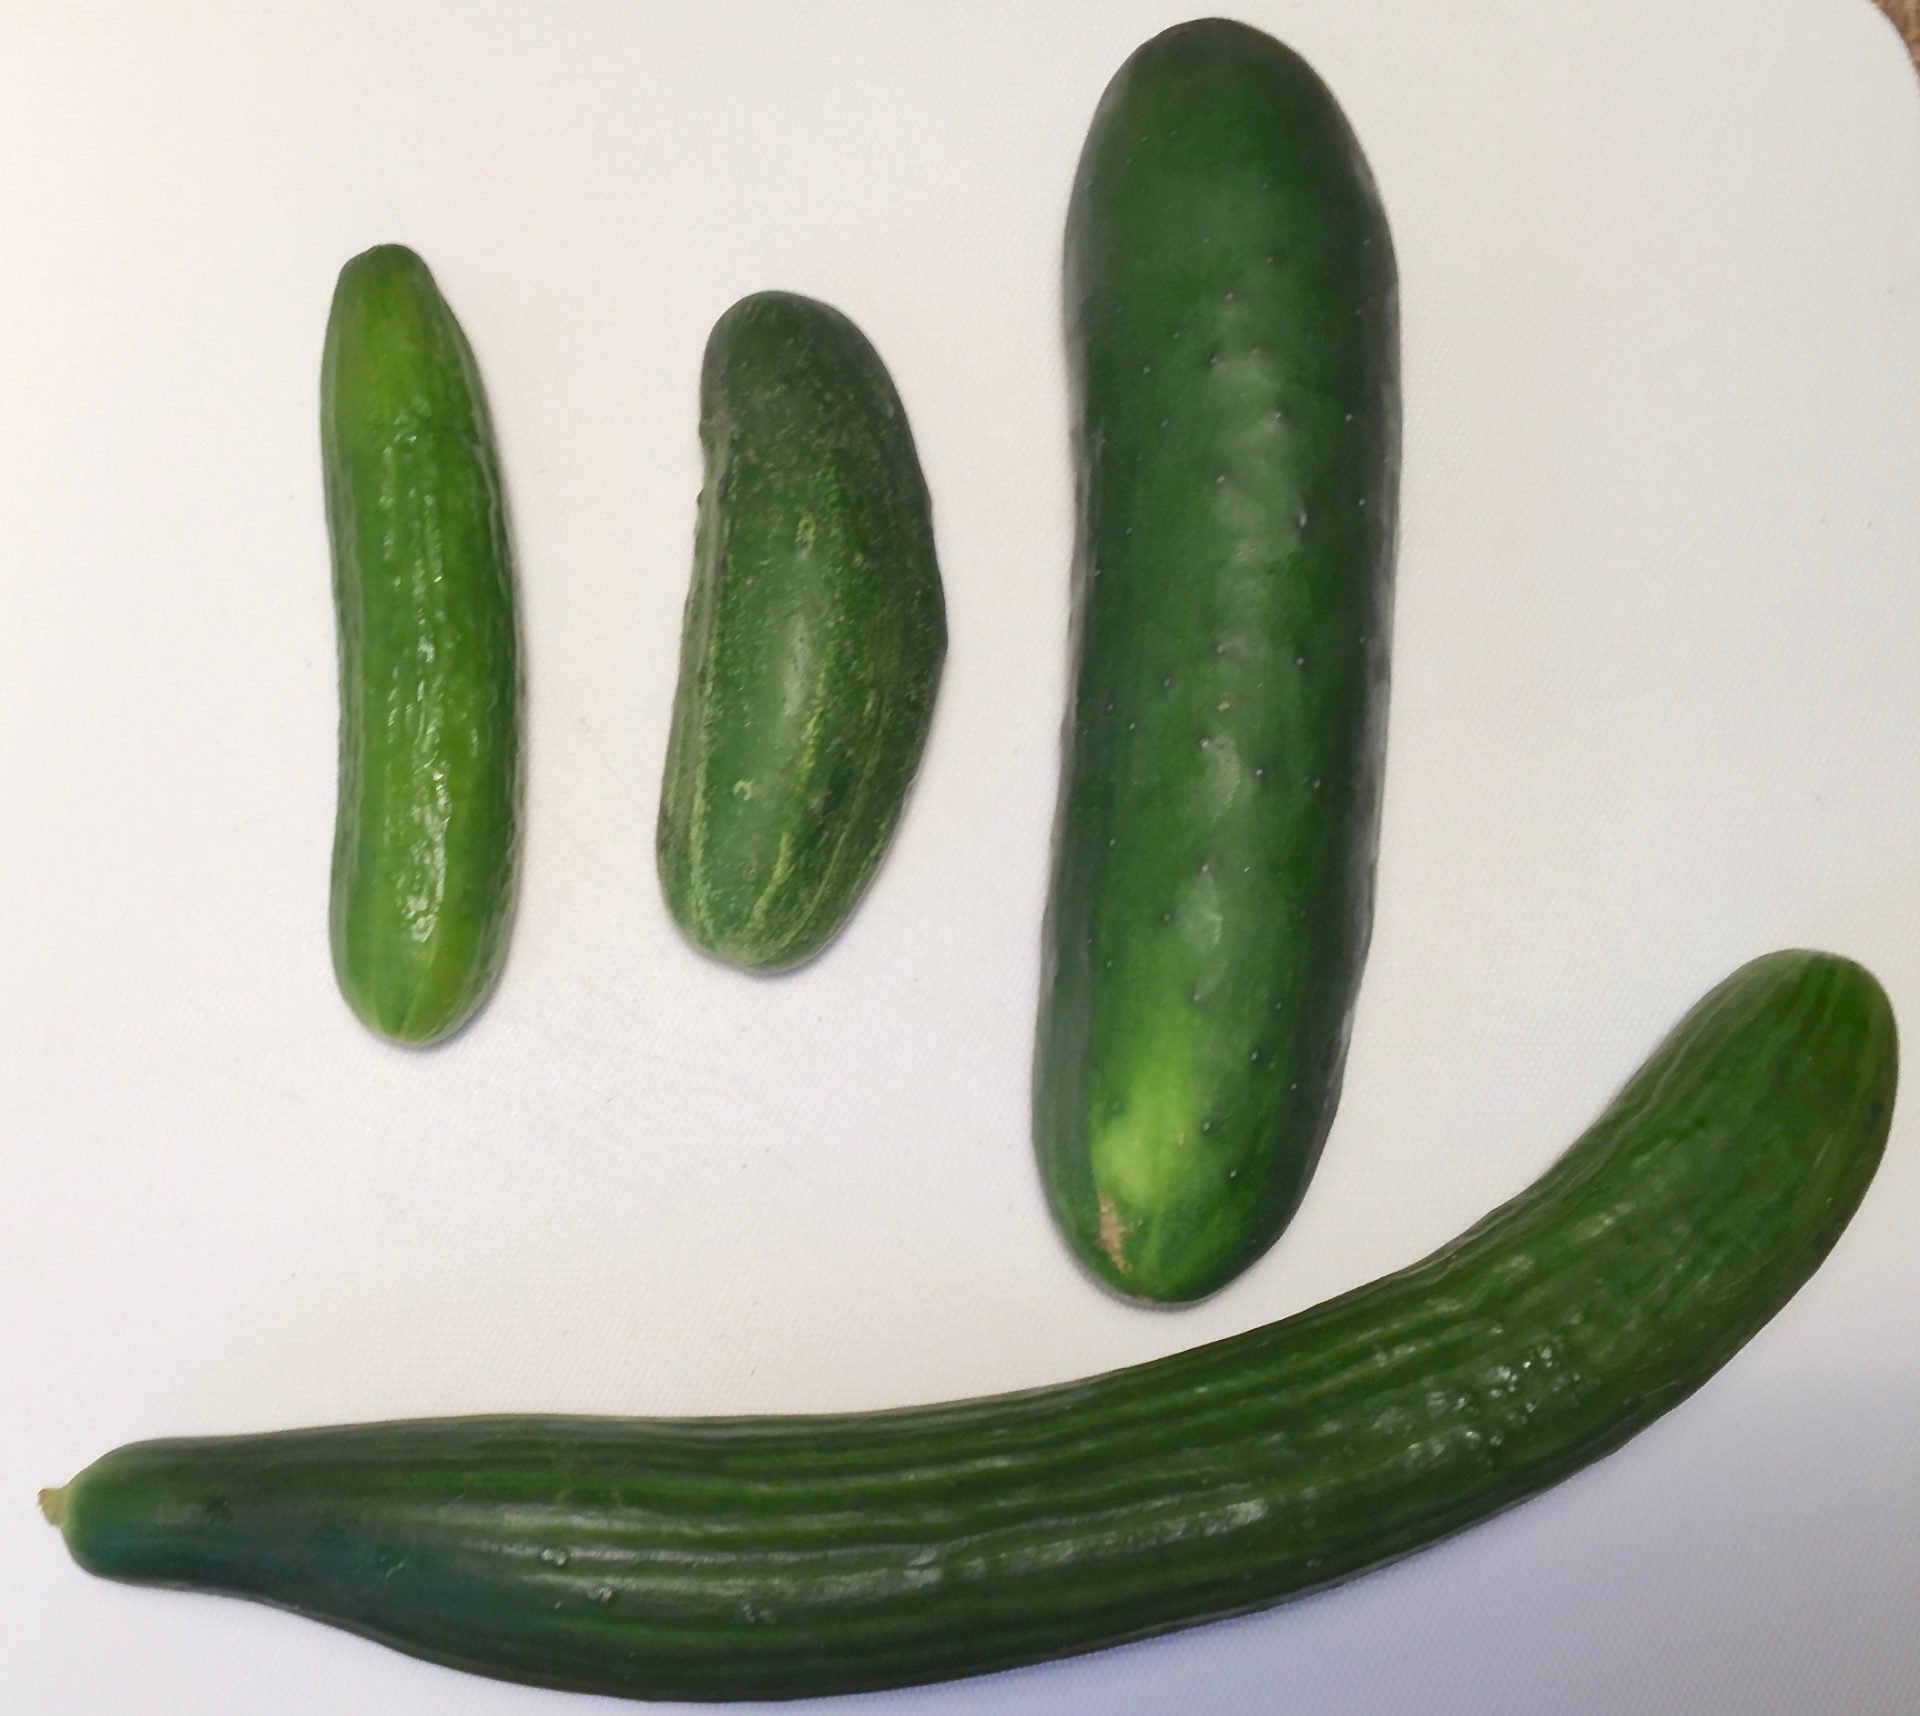 Four kinds of cucumbers